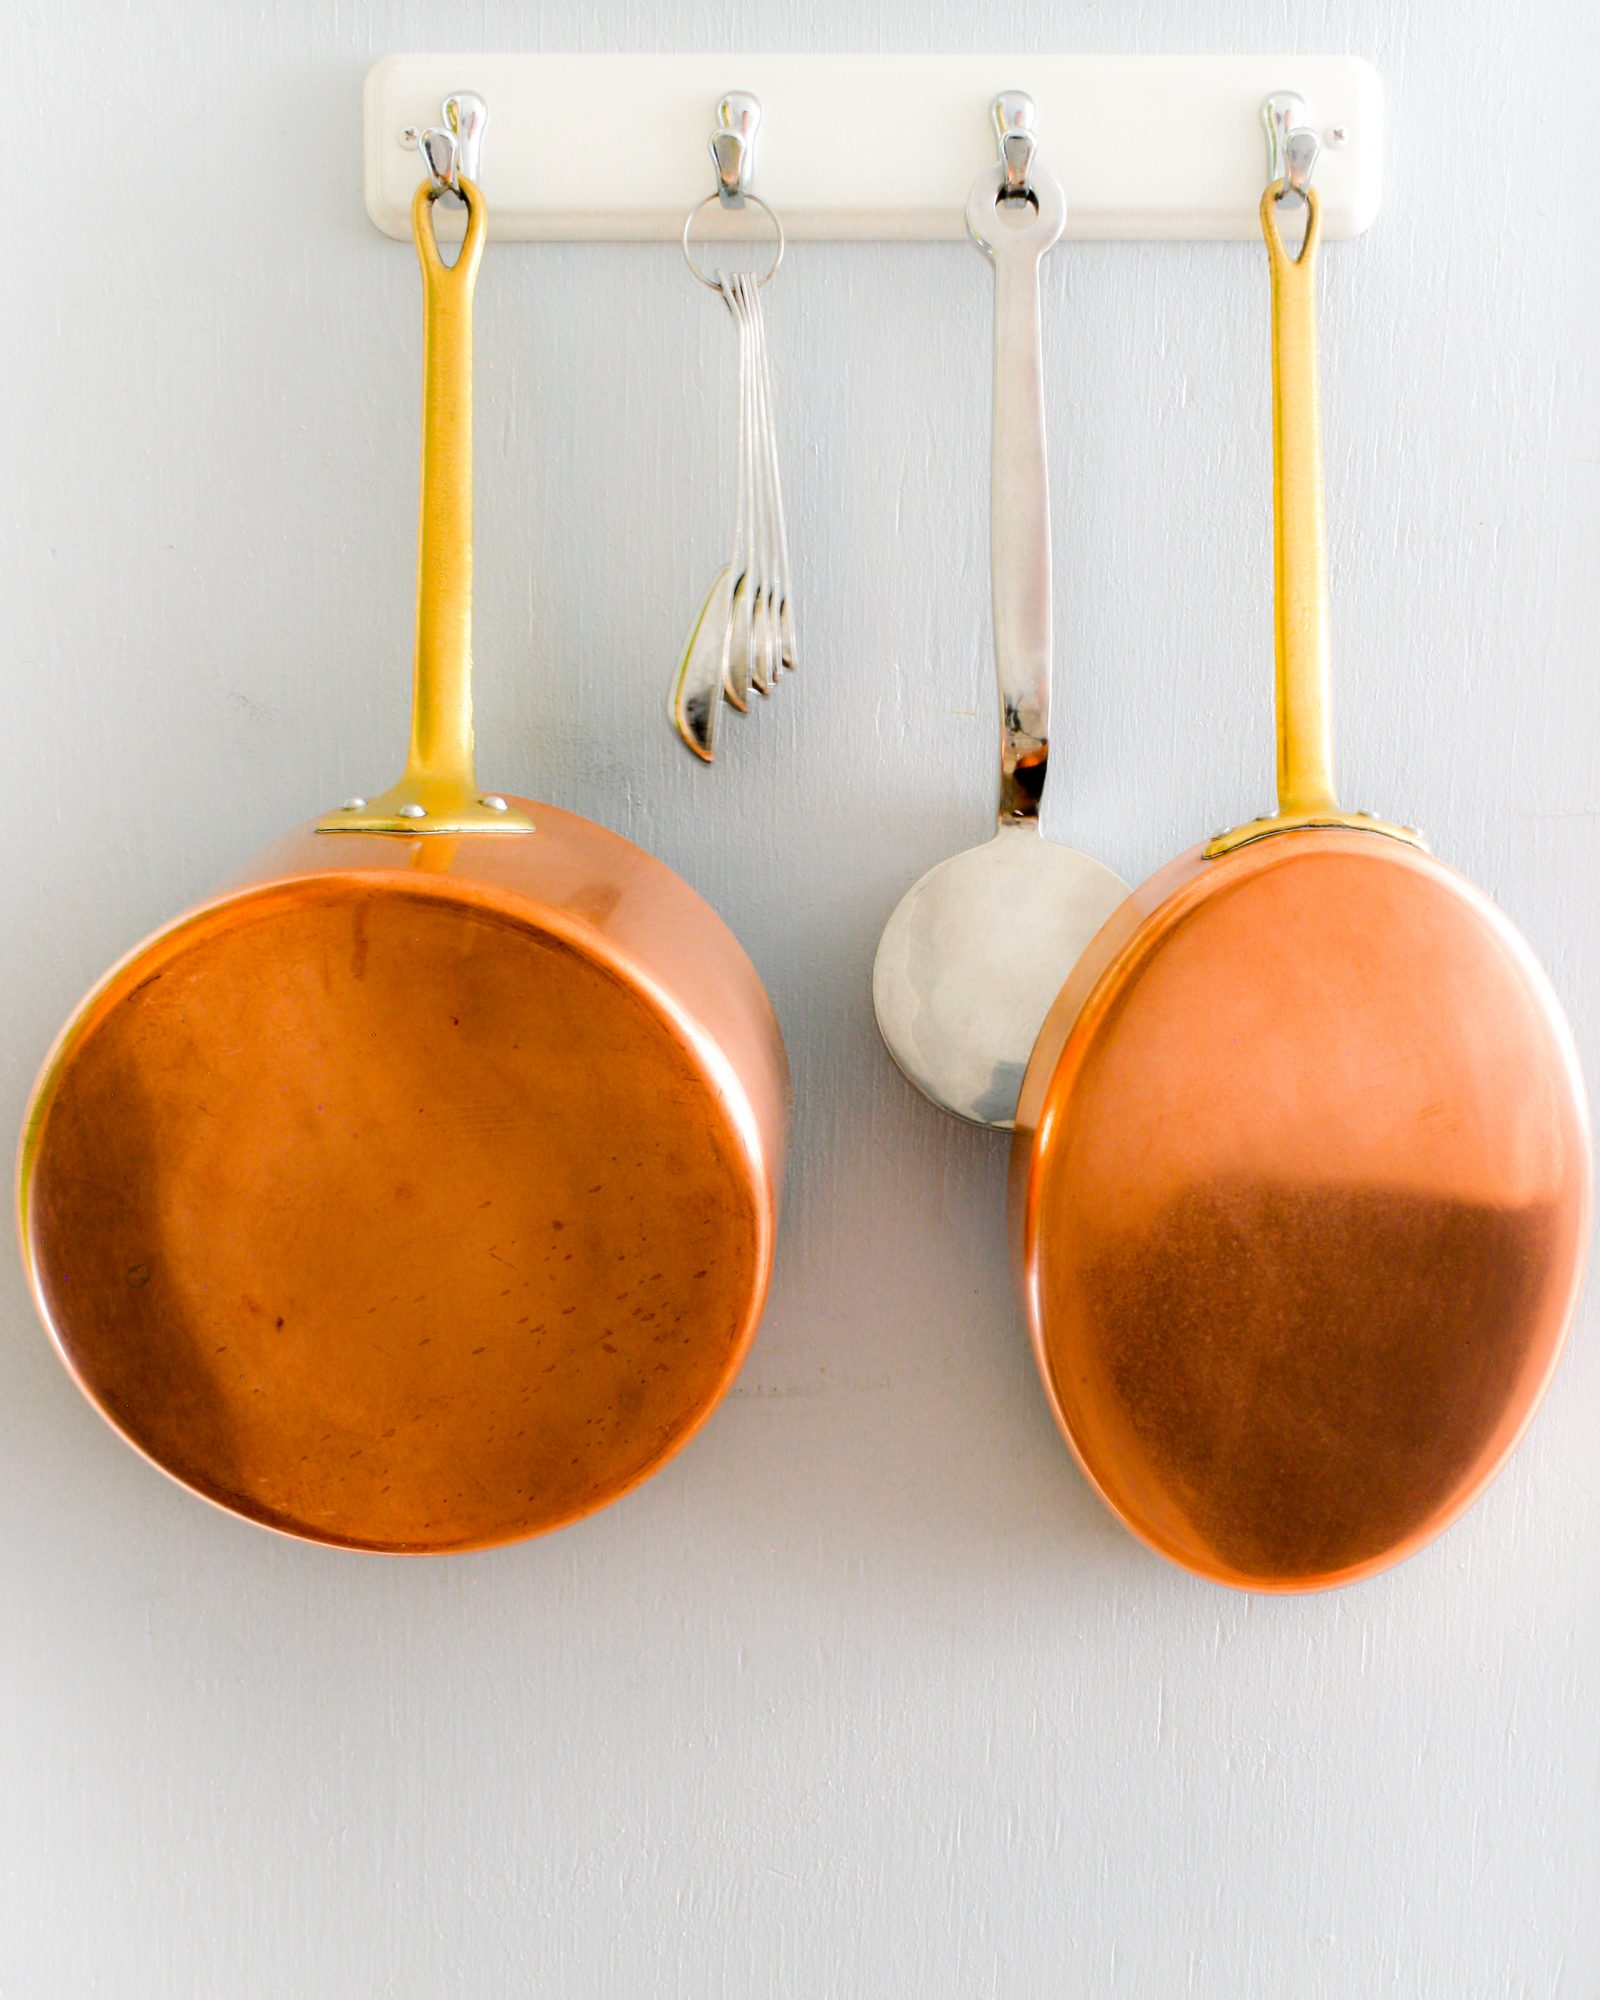 Pots and Pans